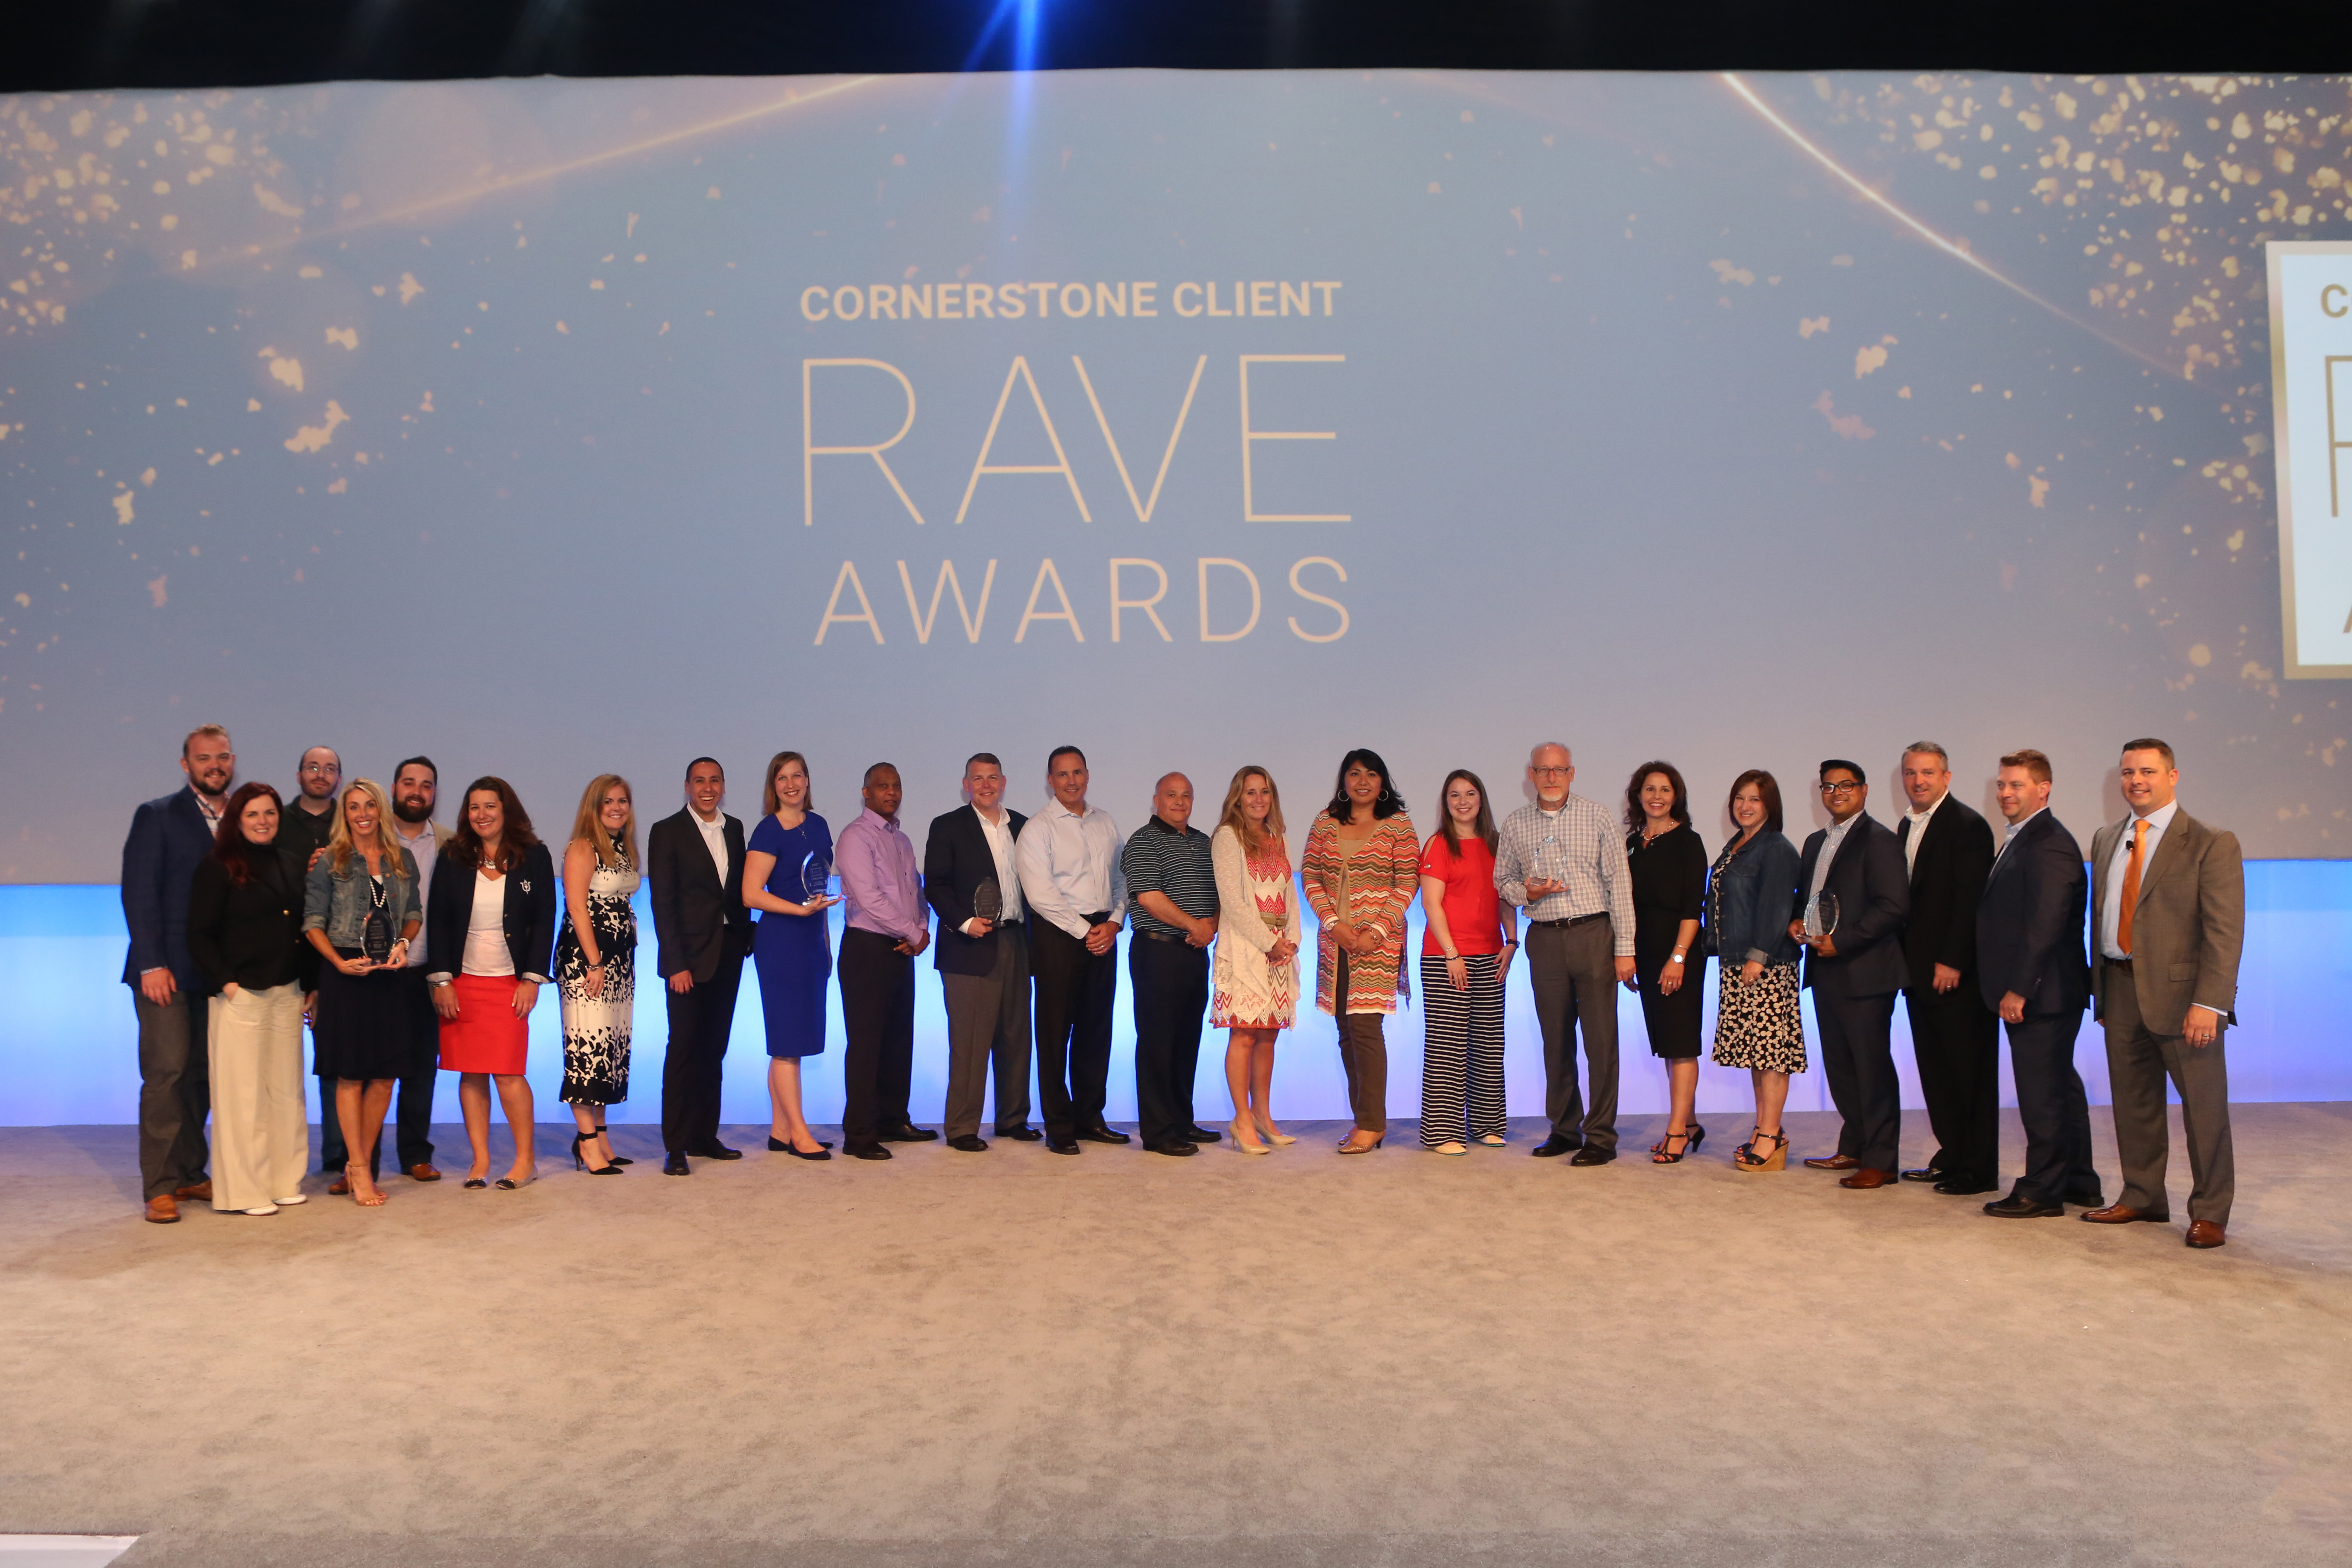 Cornerstone Ondemand Names Winners Of 2017 Client Rave Awards